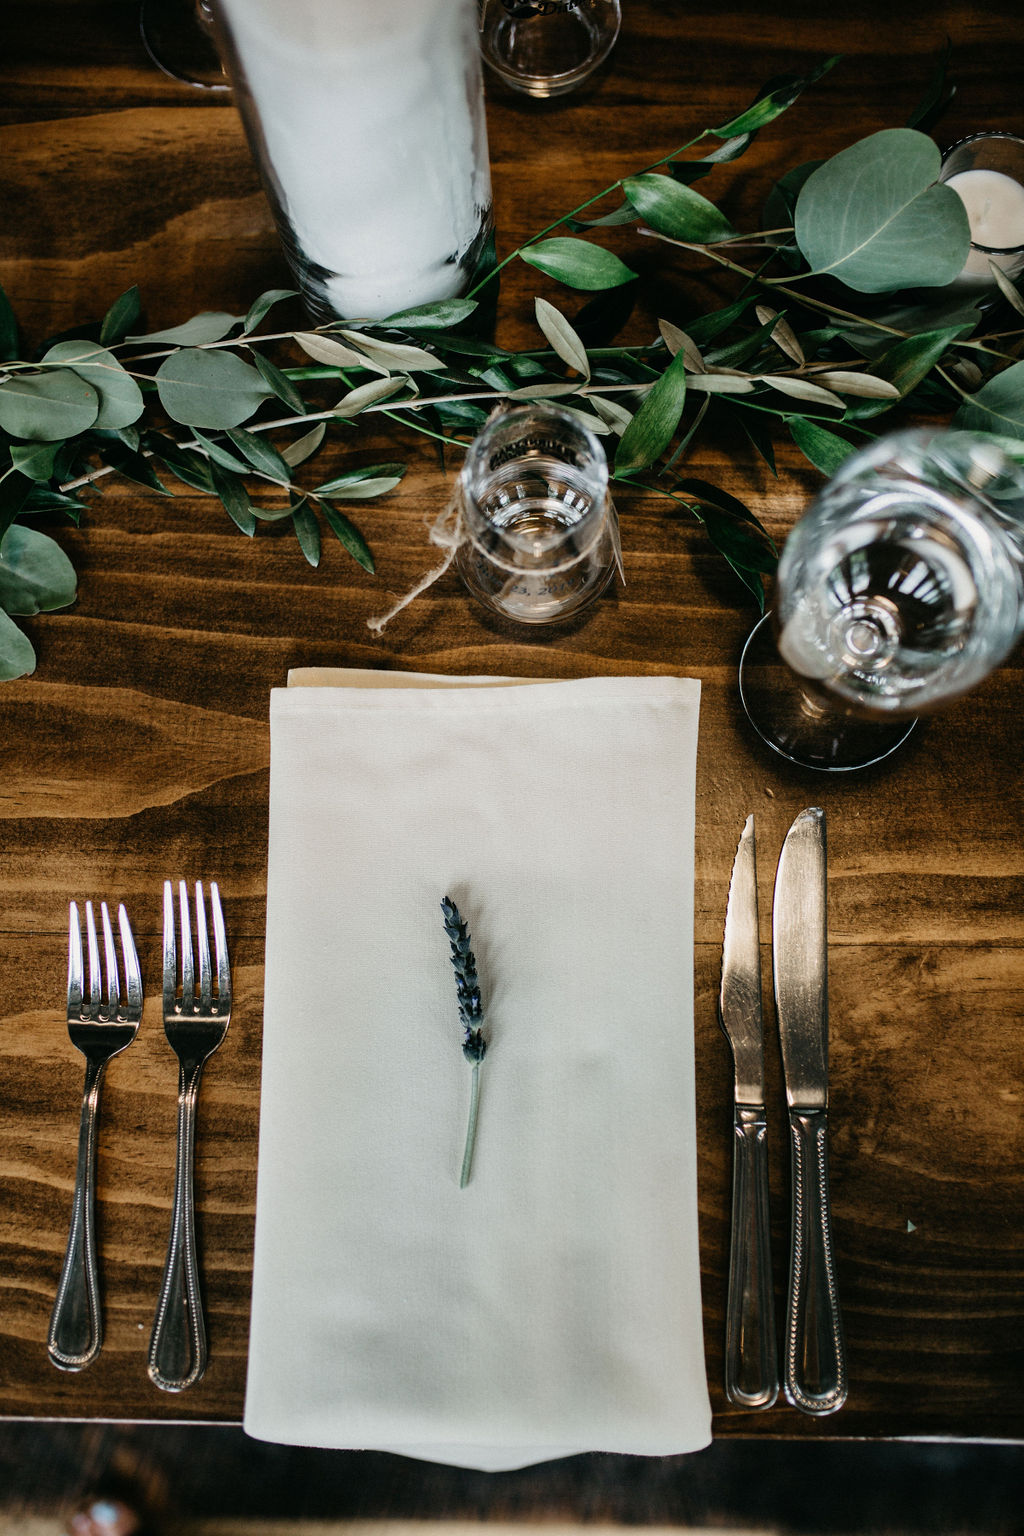 A place setting with a piece of lavender